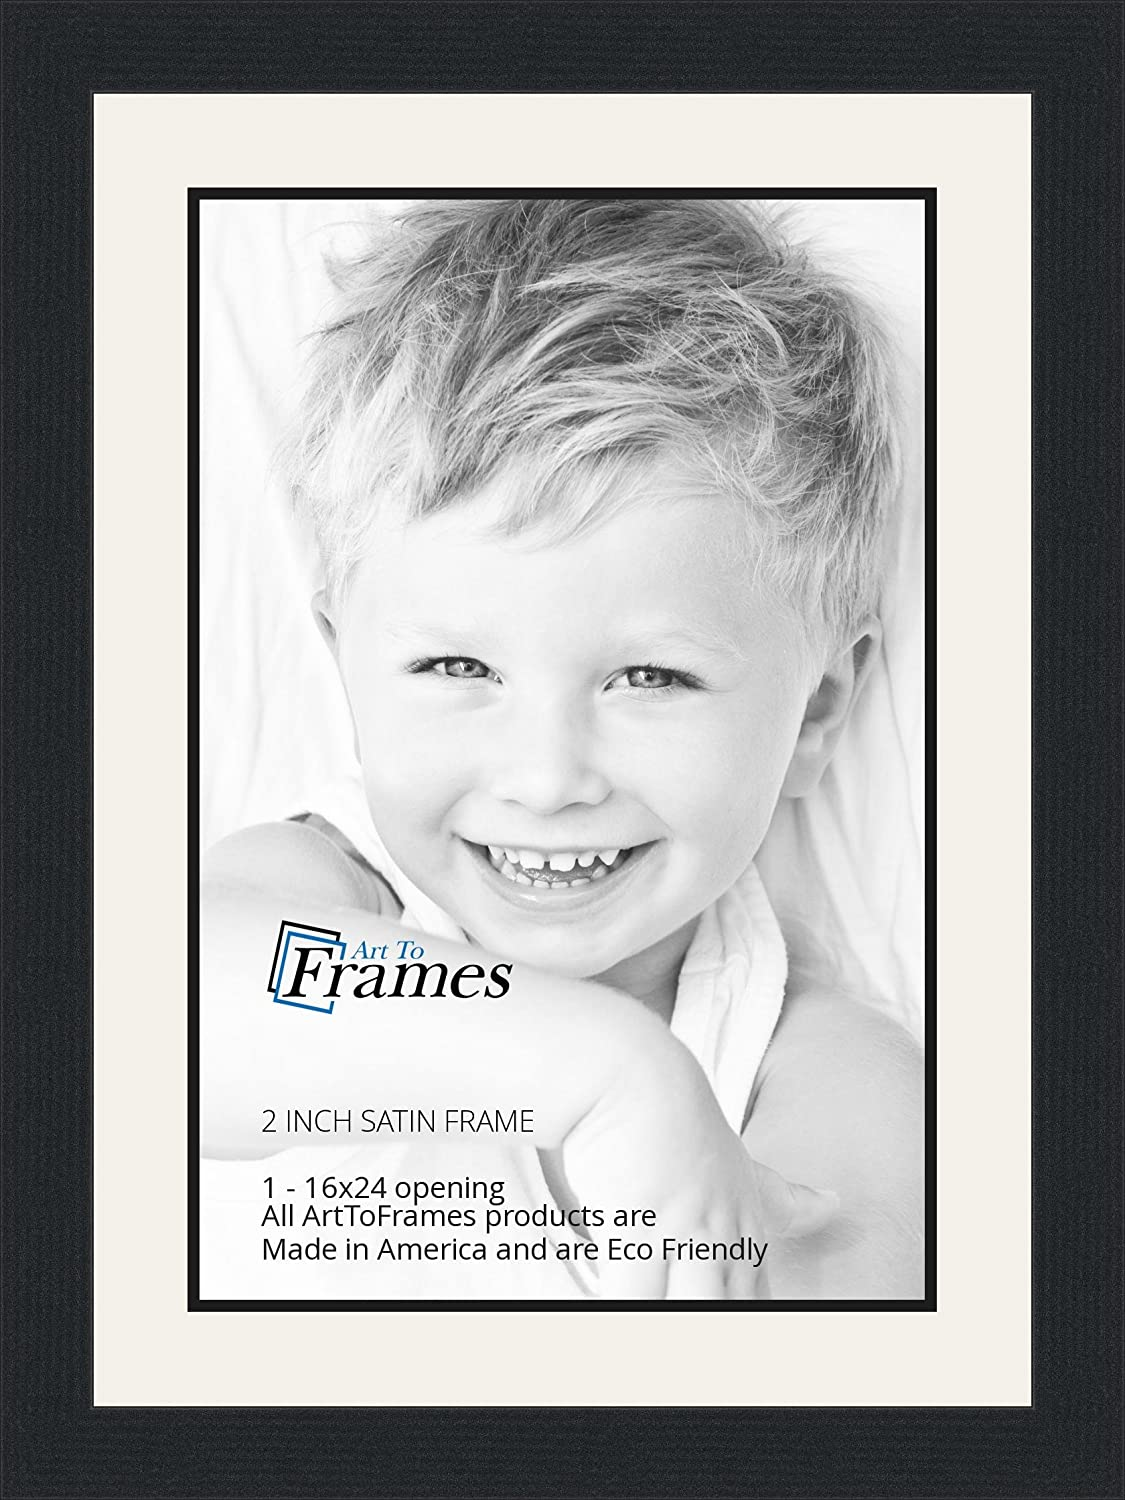 Amazon 16x24 16 x 24 picture frame satin black 2 wide amazon 16x24 16 x 24 picture frame satin black 2 wide with a 2 double mat single frames jeuxipadfo Images